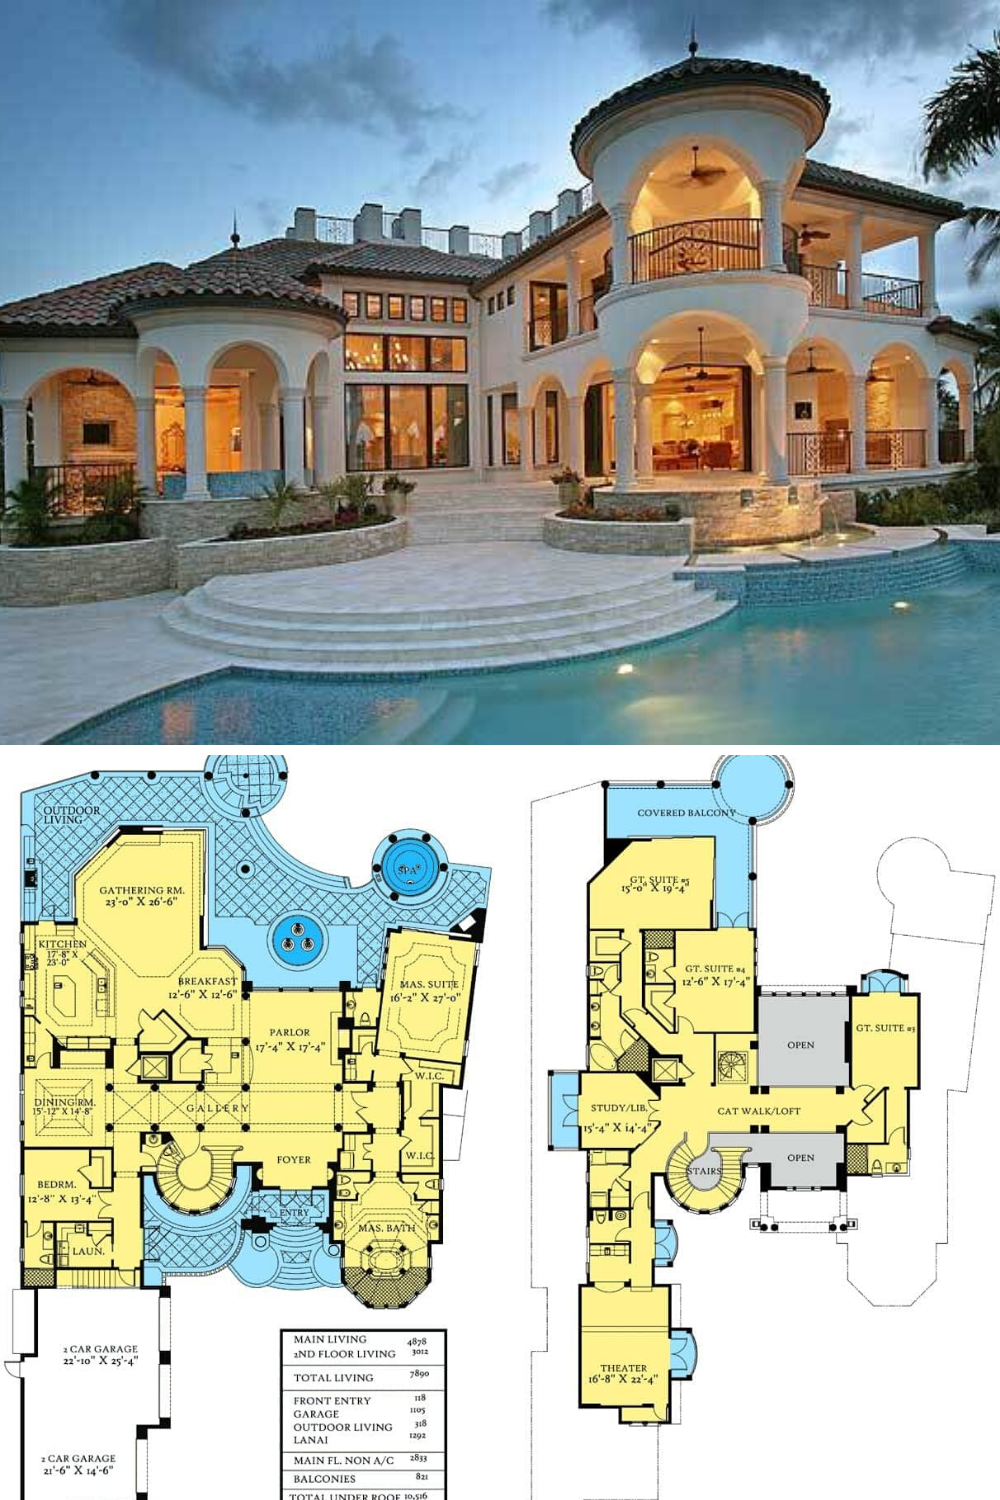 Two Story Mediterranean Style Mansion With Rotunda 5 Bed Floor Plan House Plans Mansion Mediterranean House Plans Luxury House Plans